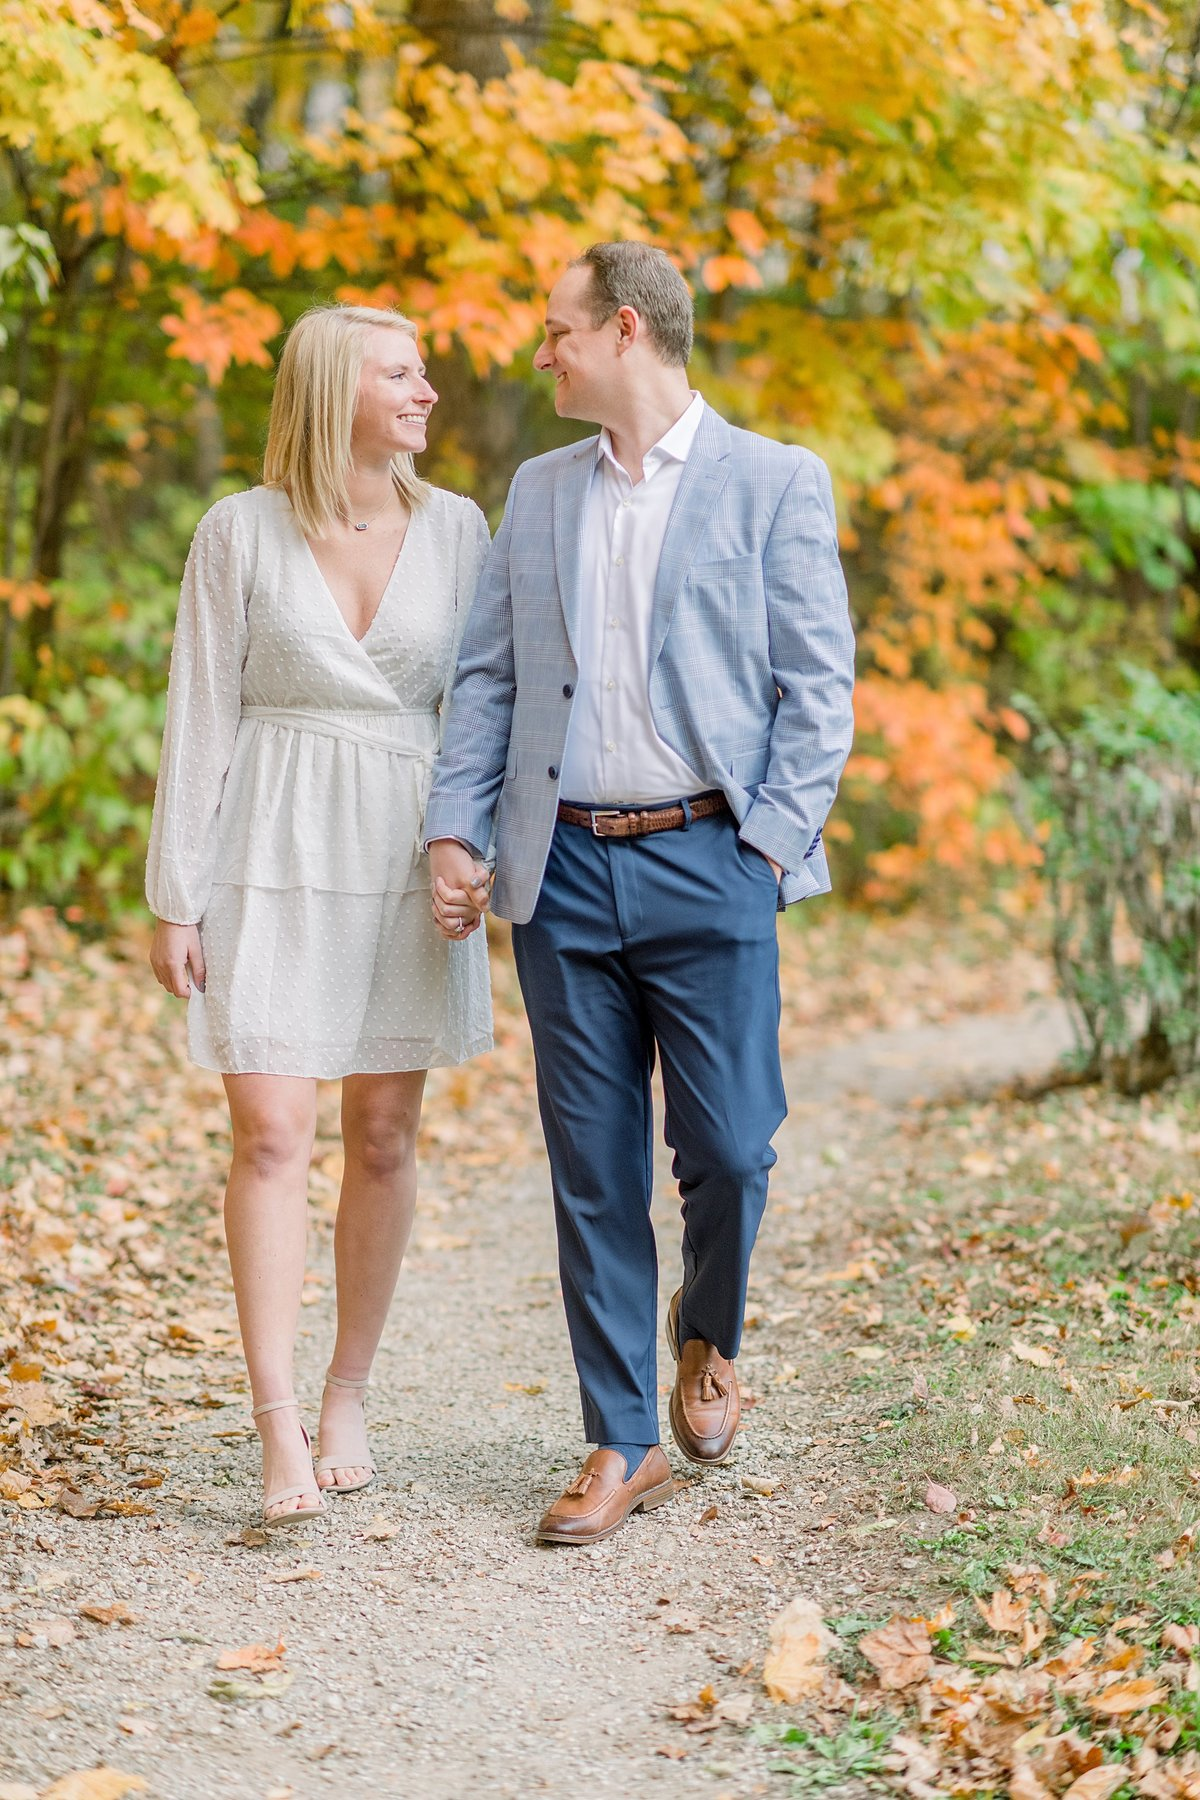 Holcomb Gardens Engagement Session Indianapolis, Indiana Wedding Photographer Alison Mae Photography_3203